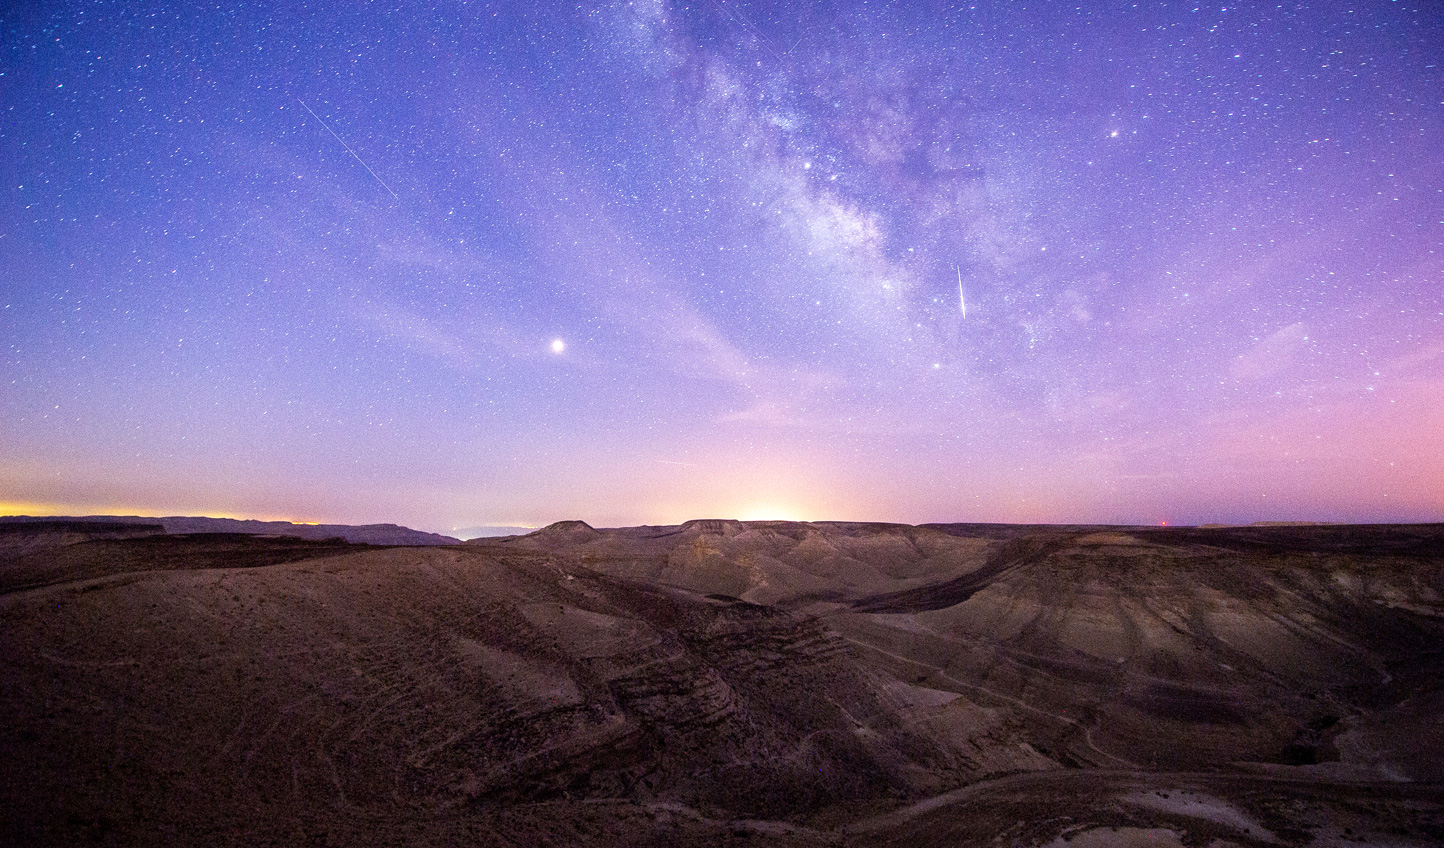 Witness the stars light up the desert skies by night